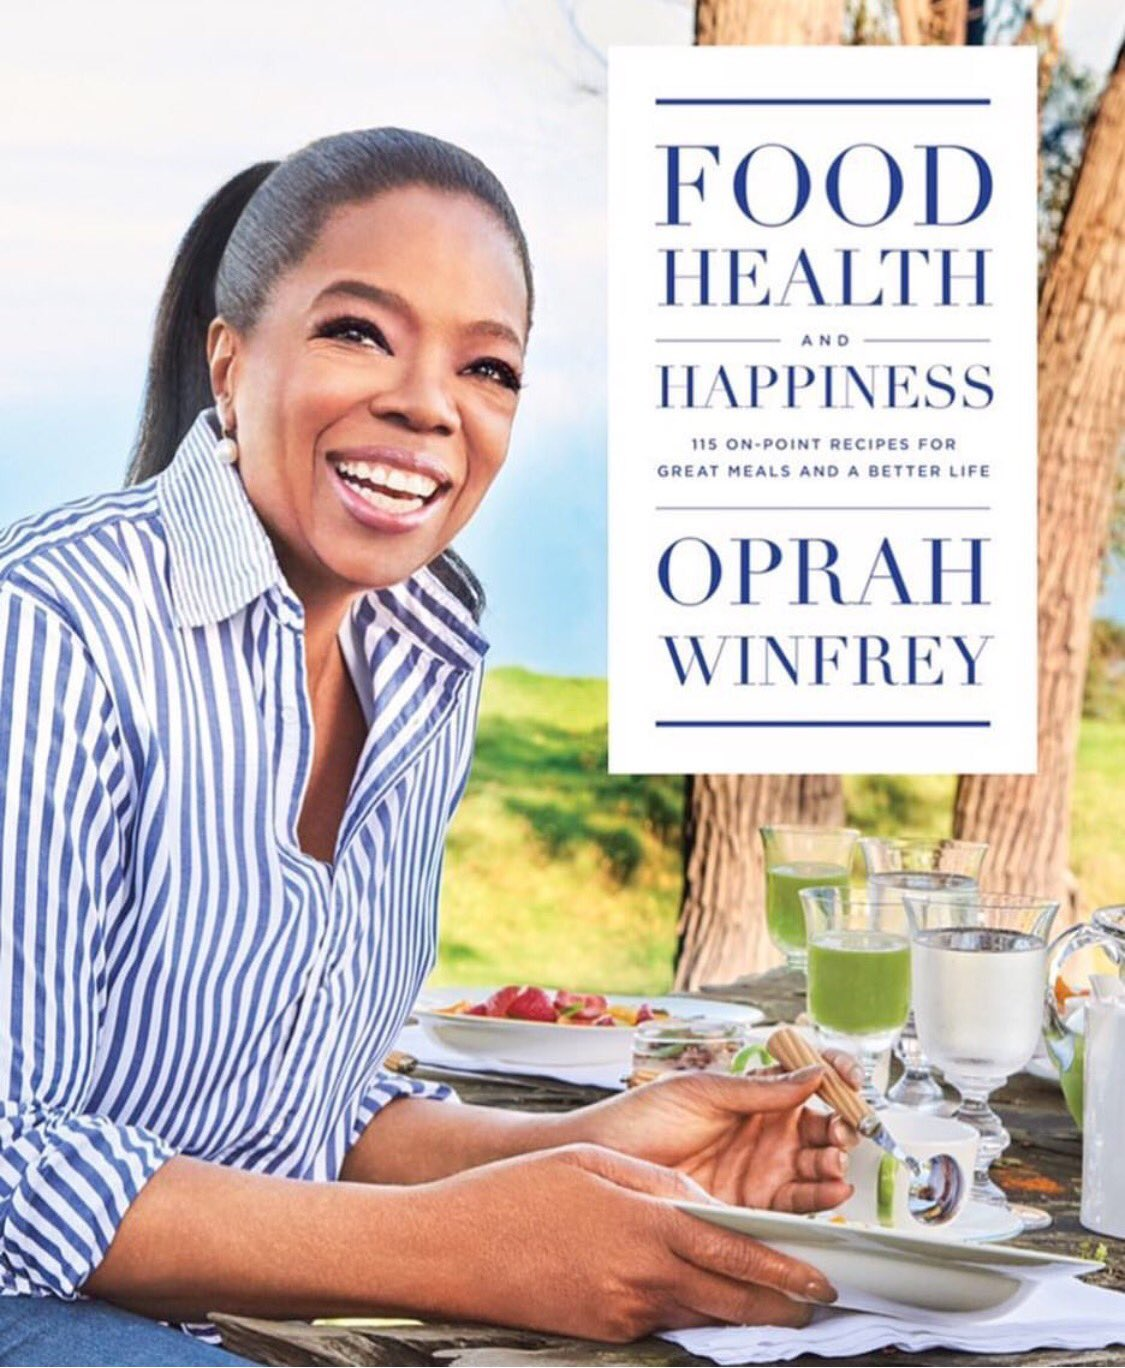 Available today! https://t.co/dyiPRtBlUu #FoodHealthHappiness https://t.co/NluwyeEBrS